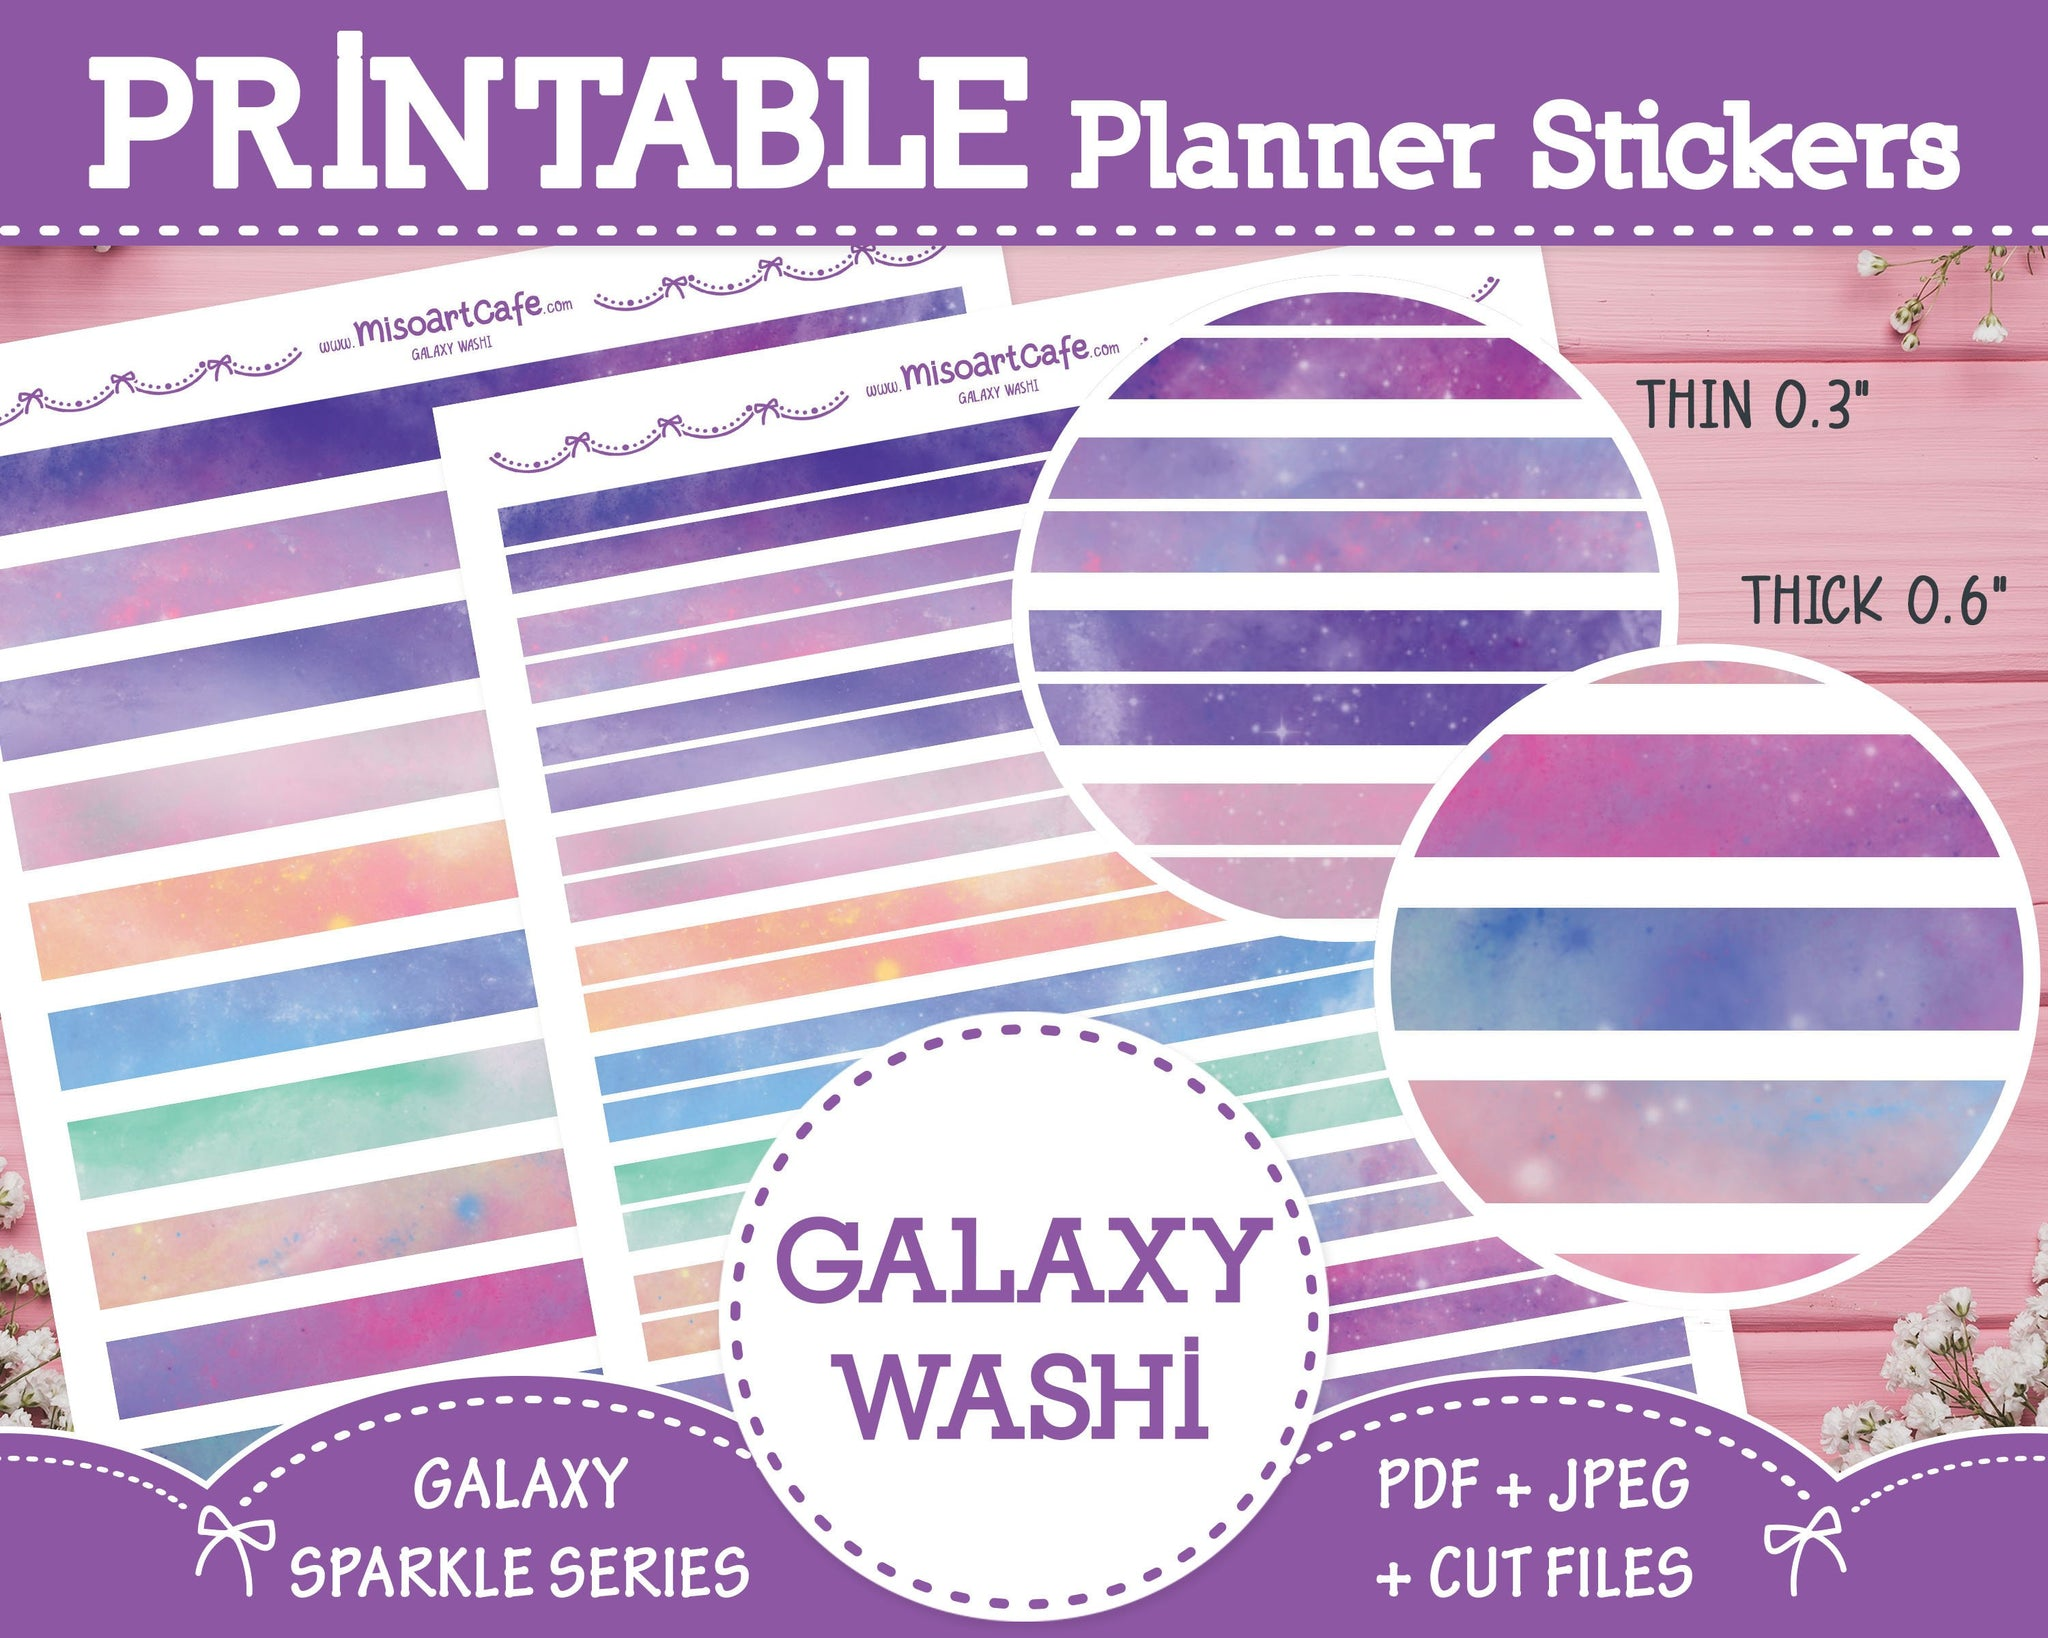 Printable Galaxy Pattern Washi Tape - Galaxy Sparkle Planner Stickers - Miso Art Cafe